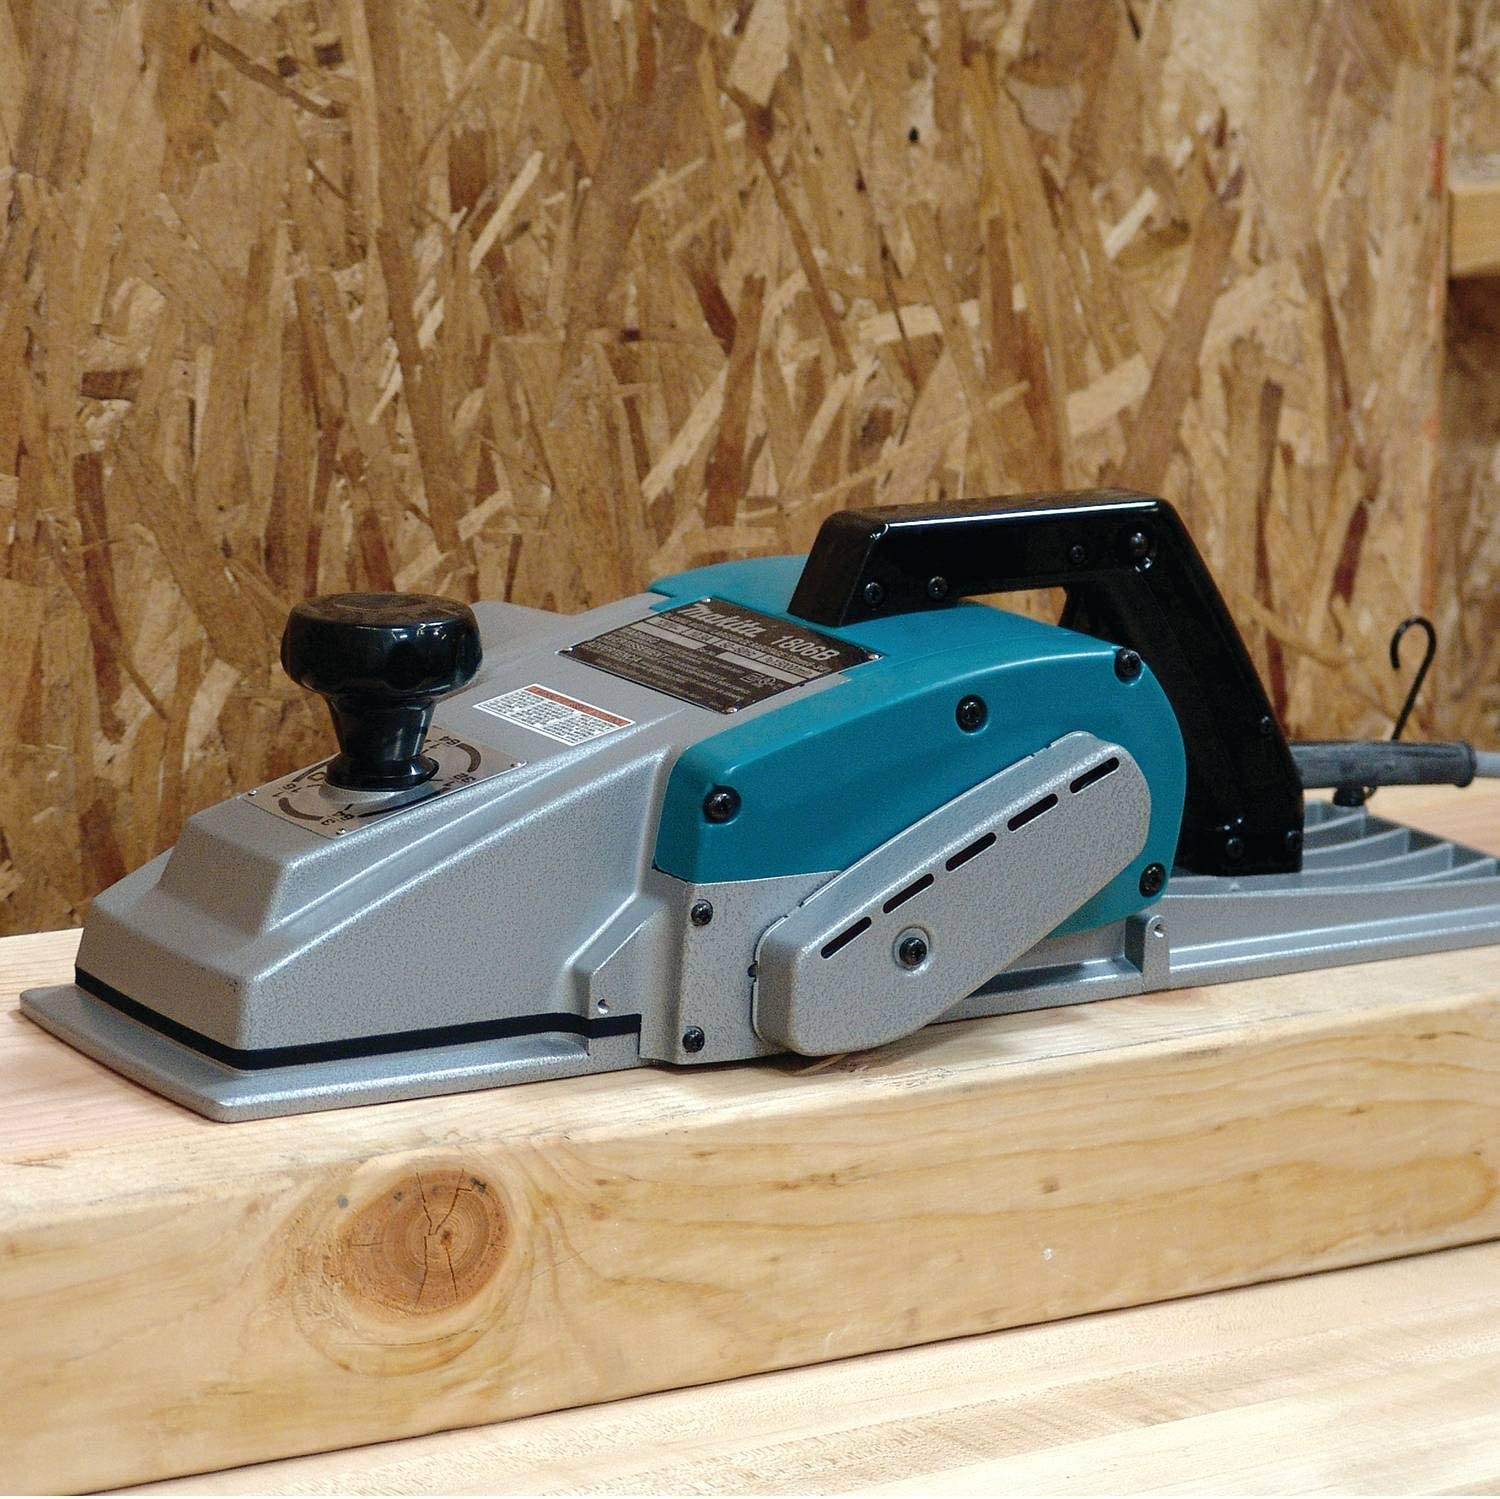 Makita 1806B Electric Hand Planers product image 2